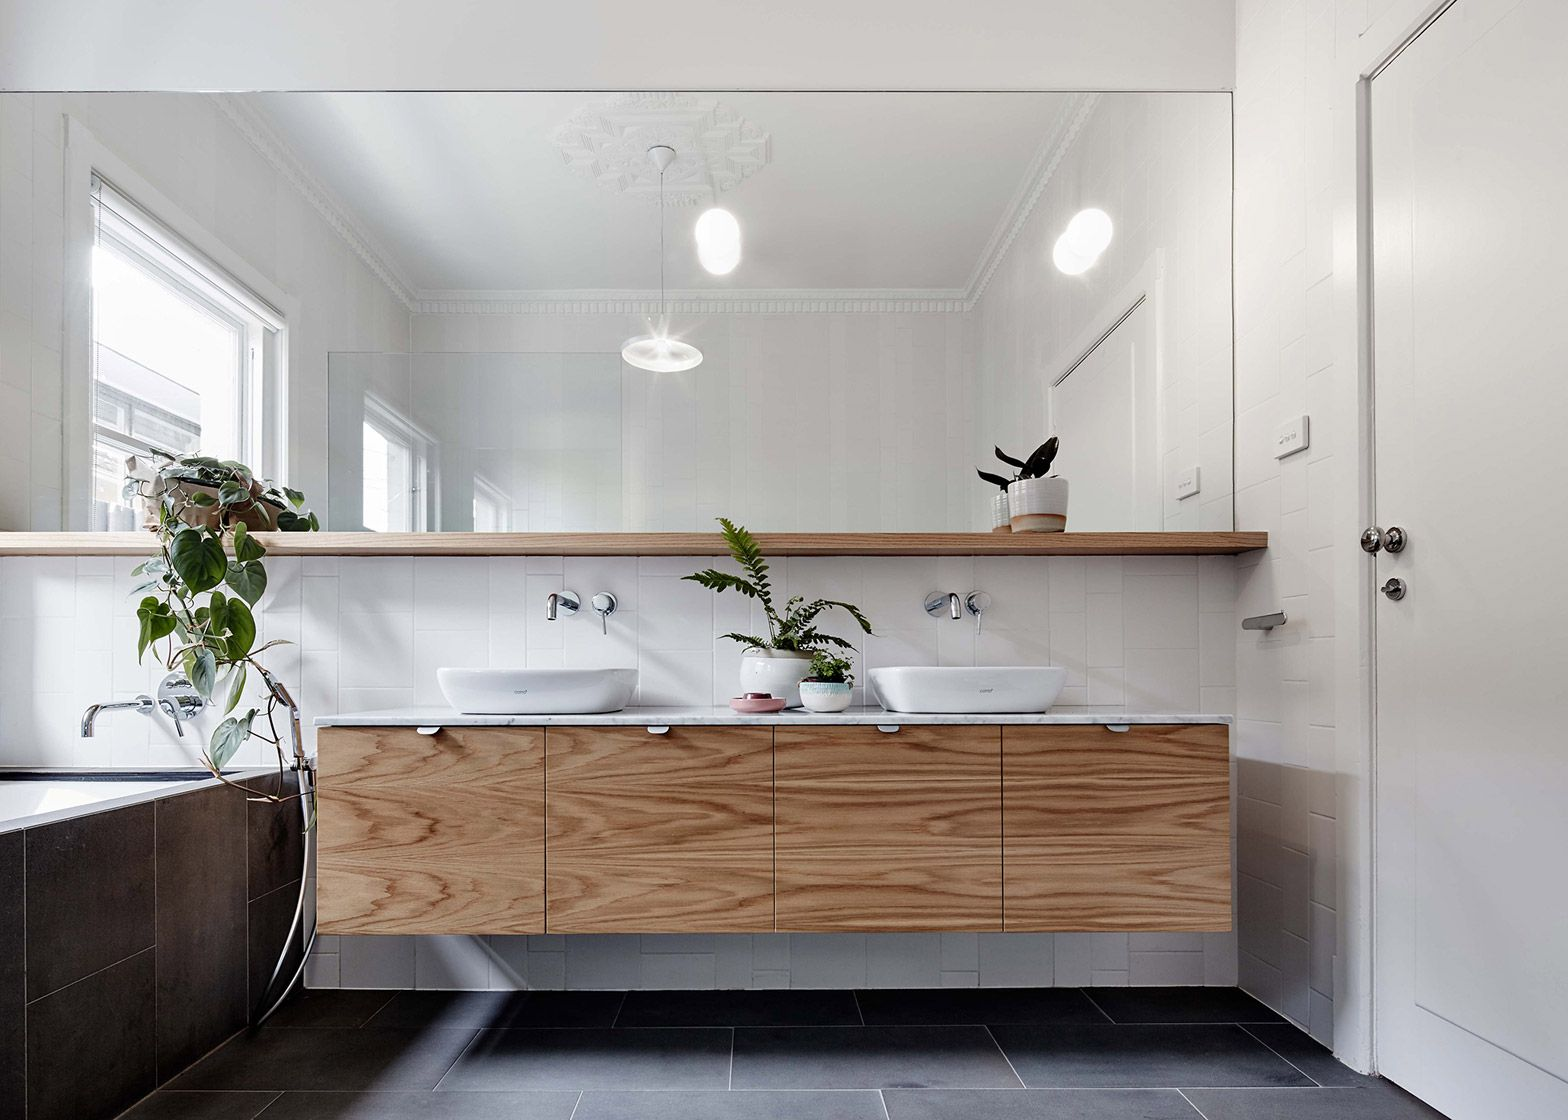 New Design Bathrooms Freadman White Designs New Layout For 1930S Melbourne Home